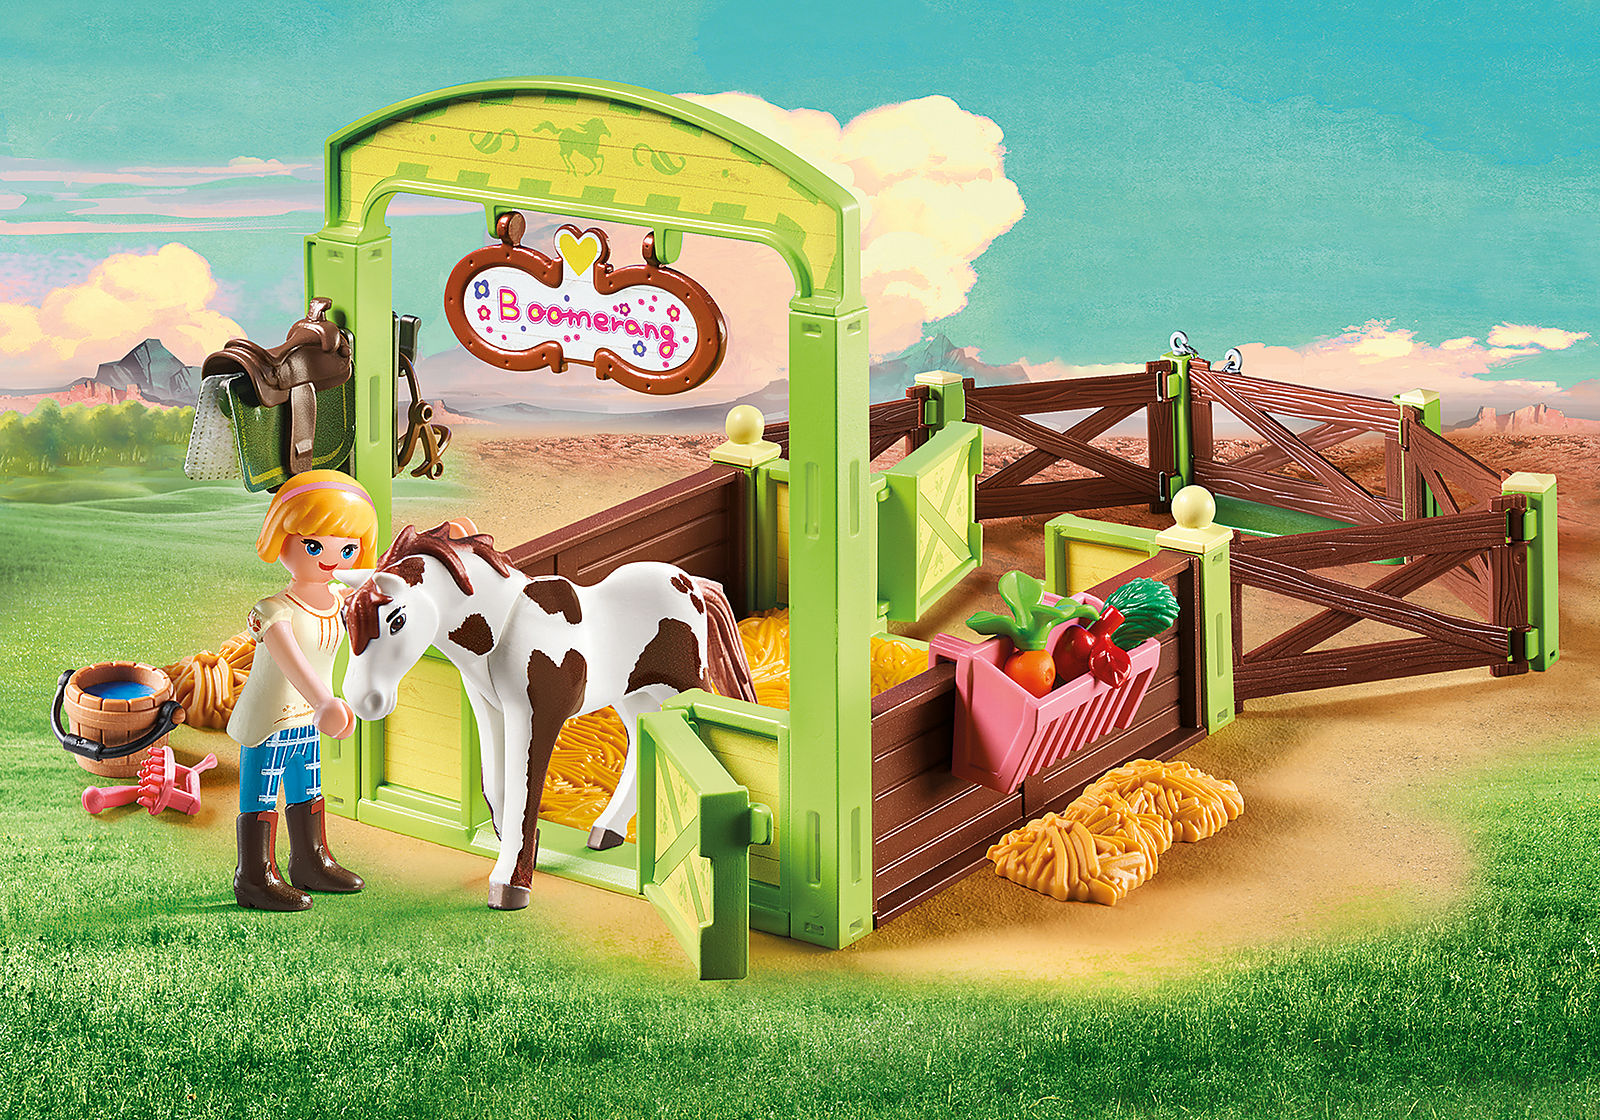 Spirit: Abigail & Boomerang with Horse Stall